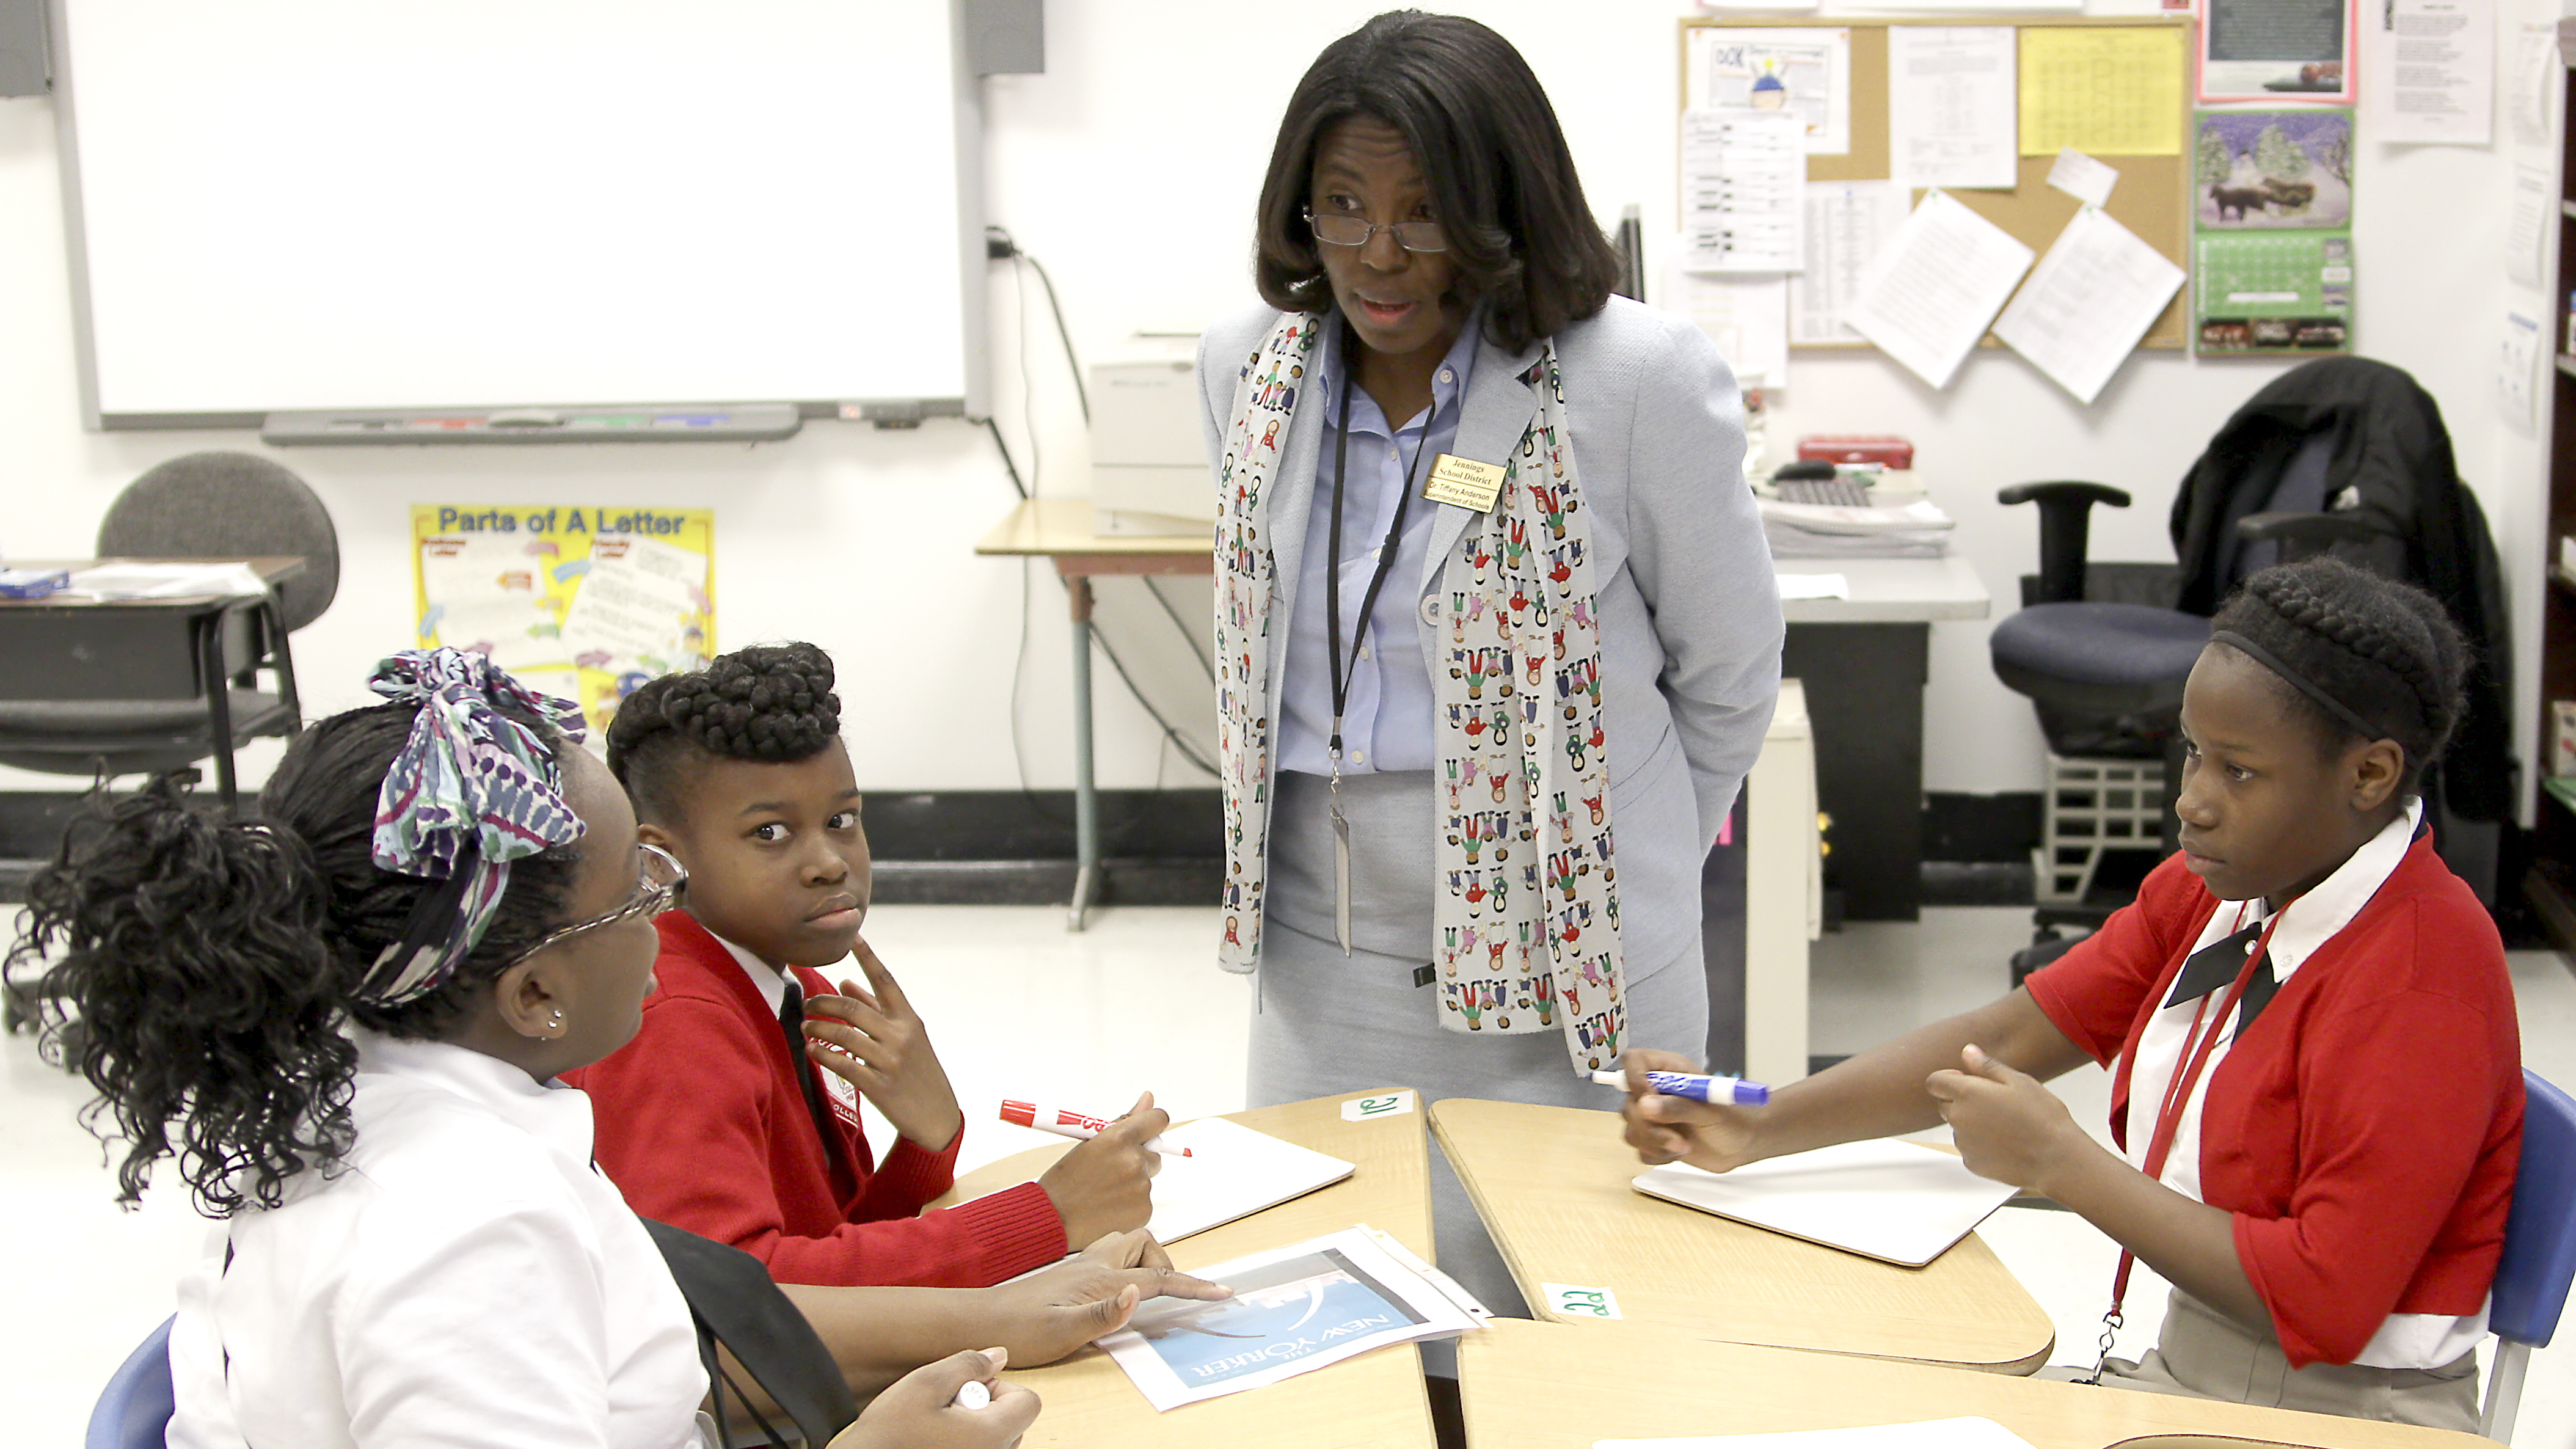 Dr. Tiffany Anderson is credited with turning around the school system in Jennings, Mo. Dr. Bill MacDonald/Courtesy of Tiffany Anderson